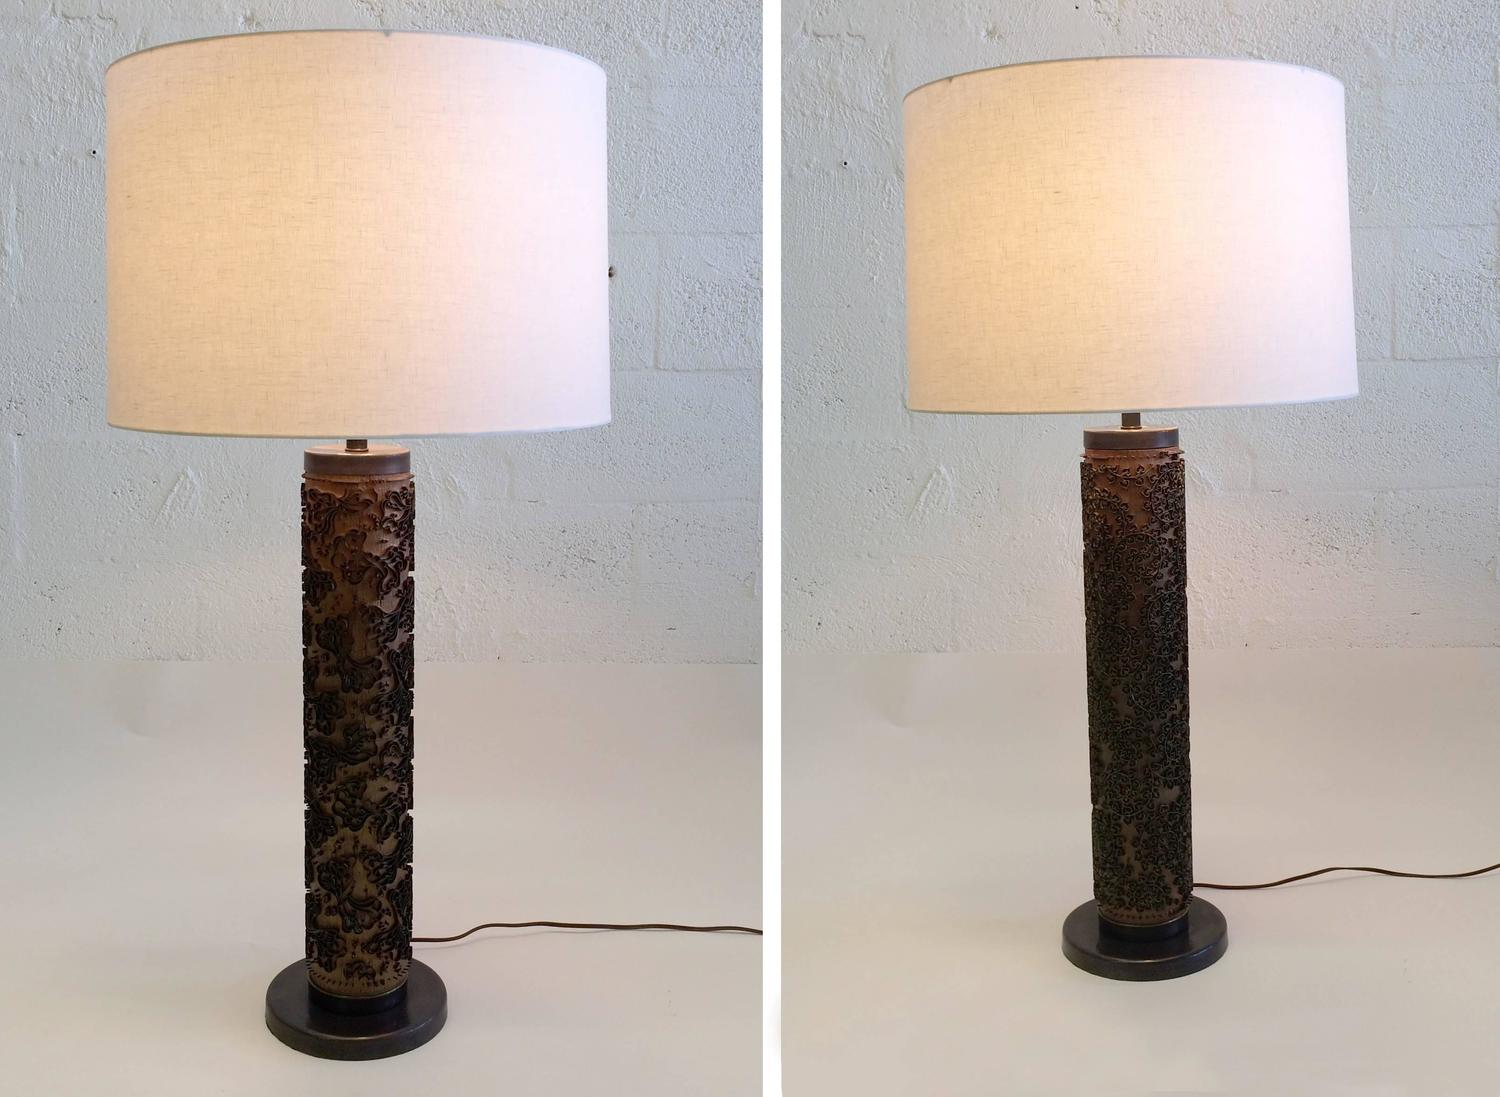 unique table lamps made from dahls tapetkunst wallpaper rollers. Black Bedroom Furniture Sets. Home Design Ideas